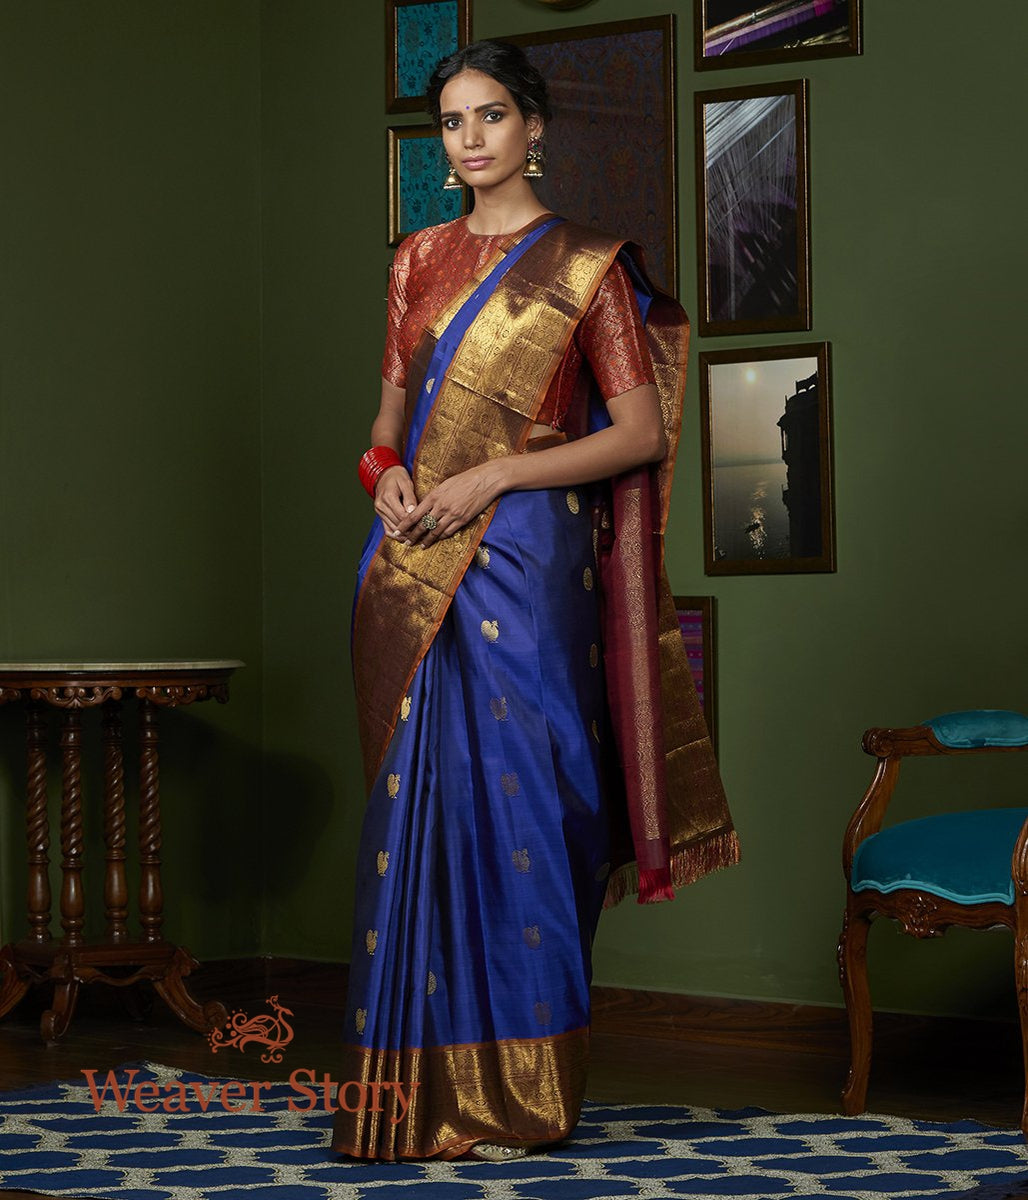 Handwoven Blue Pure Zari Kanjivaram Saree with Board Border